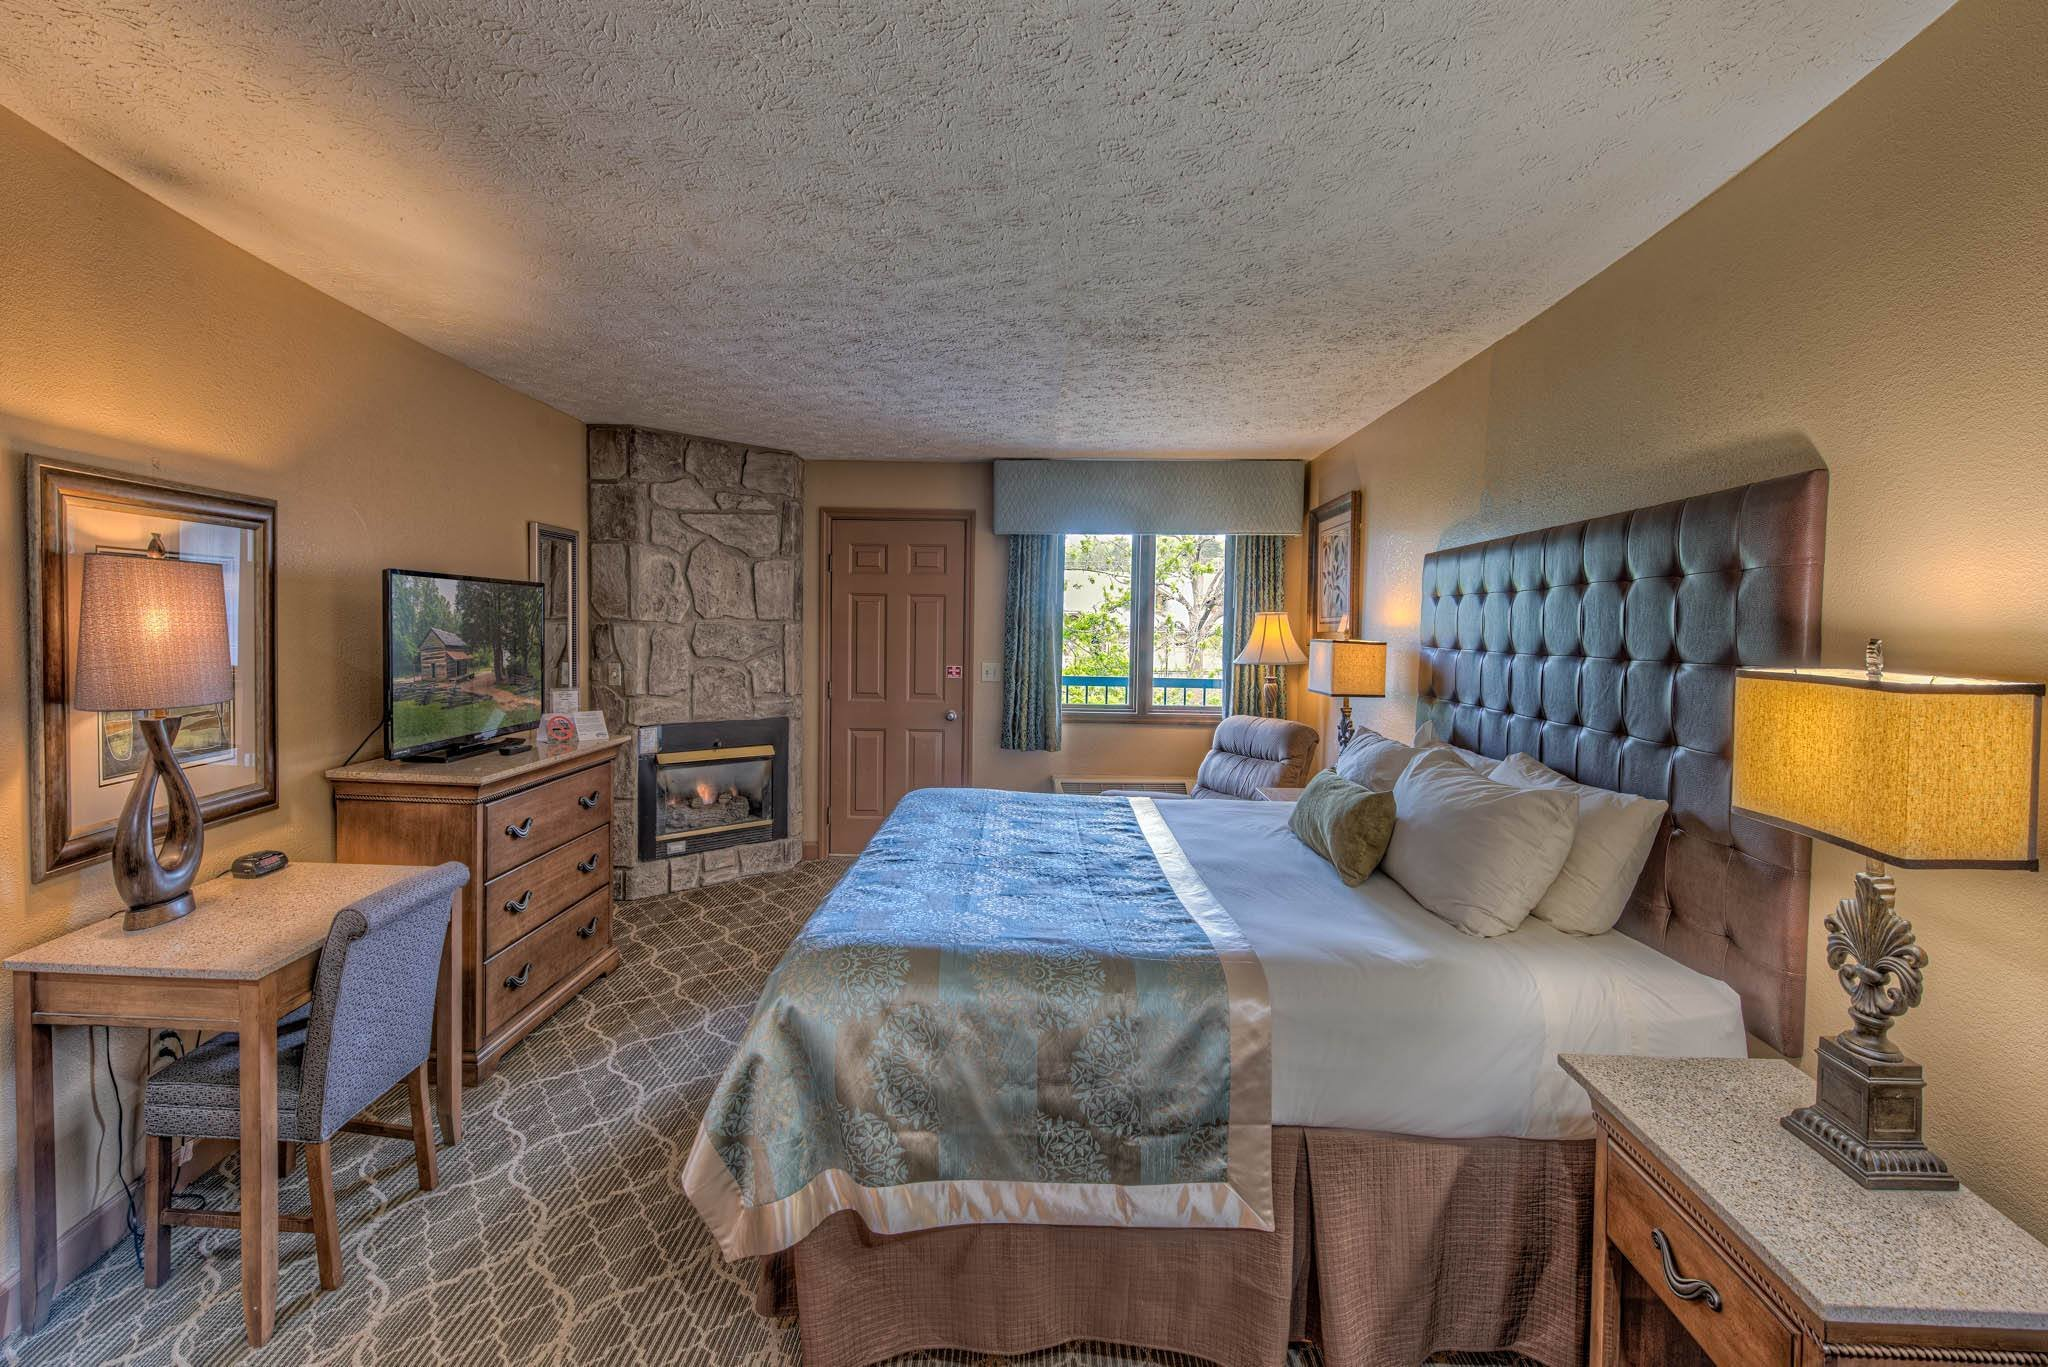 Best 2 Bedroom Hotel Rooms In Pigeon Forge Tn Www Resnooze Com With Pictures